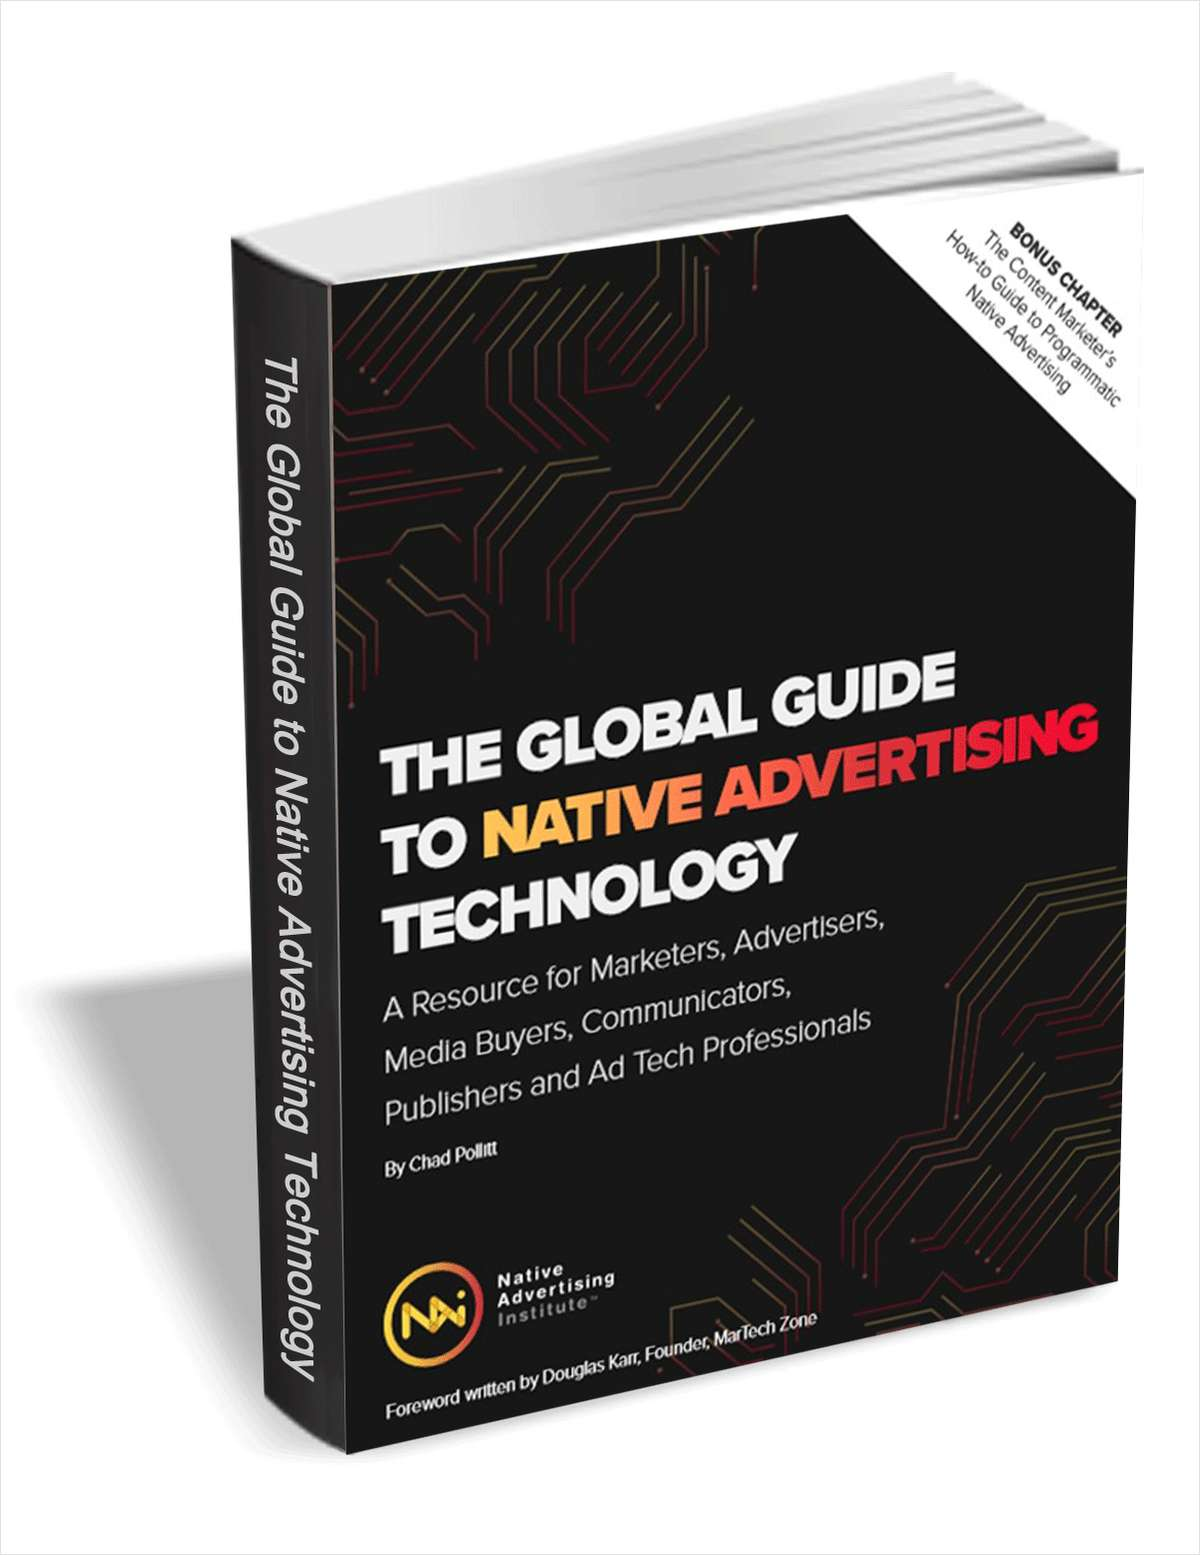 The Global Guide to Native Advertising Technology 2017